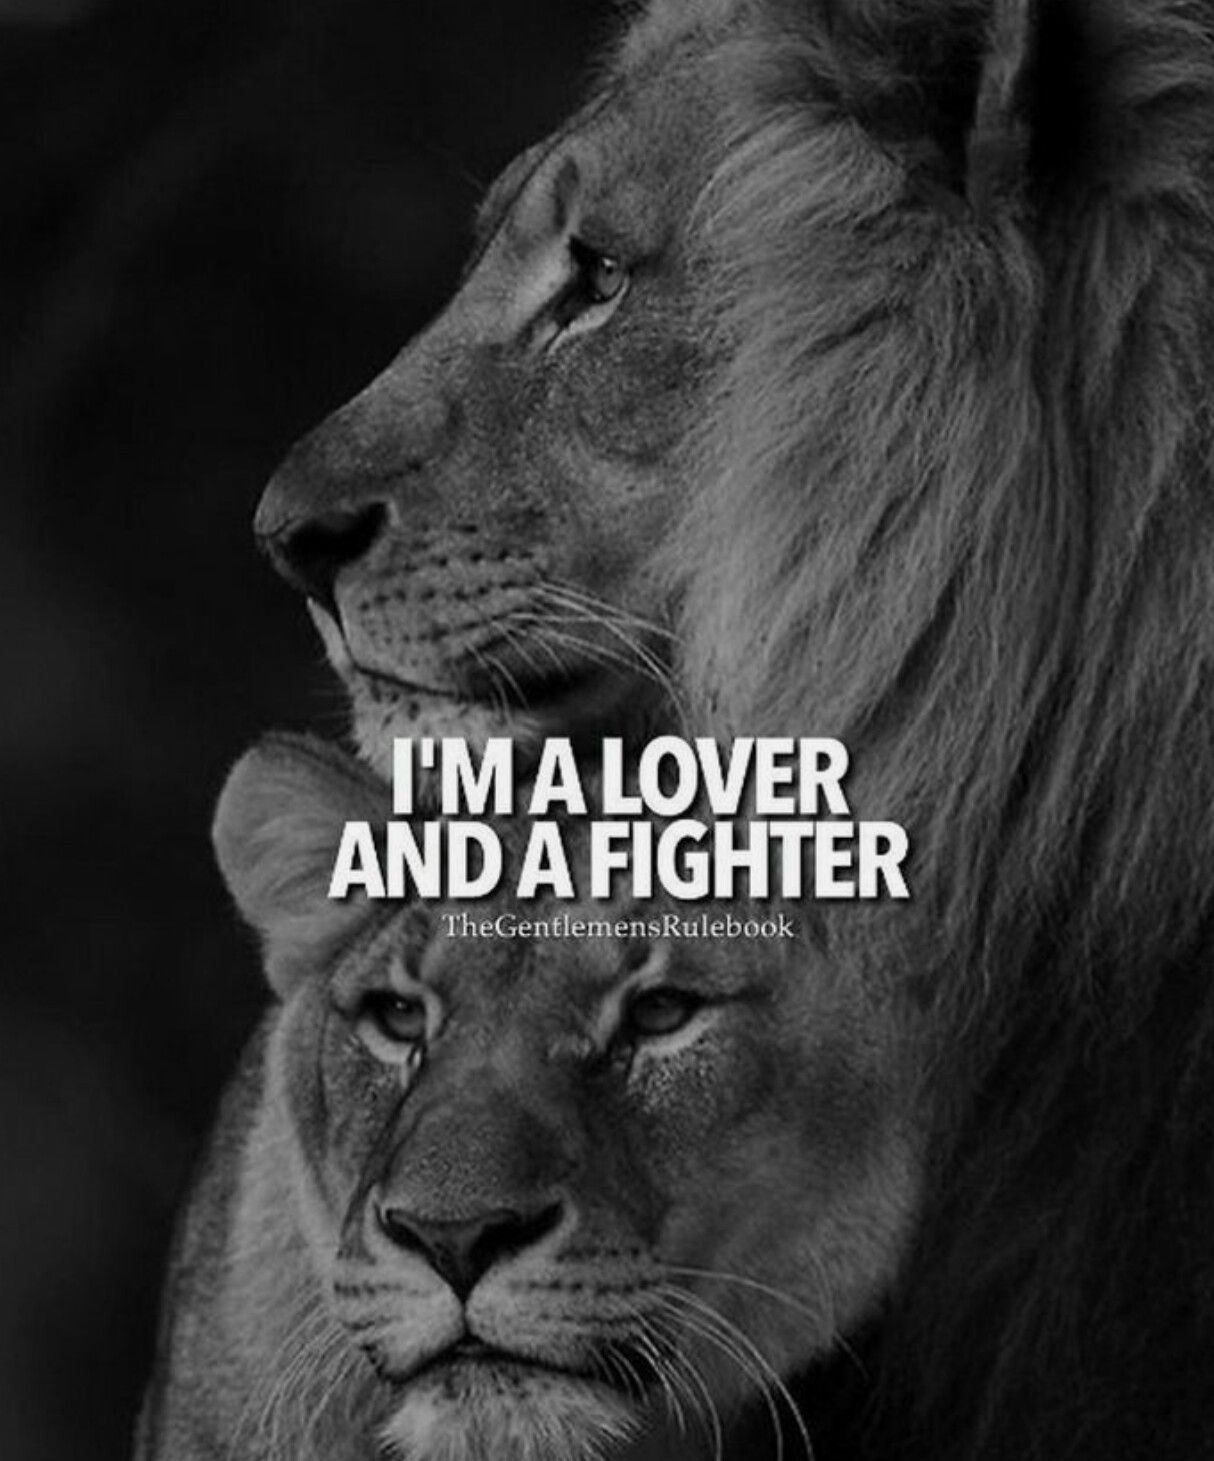 Lion King Love Quotes: € $UCCE$$ CLUB